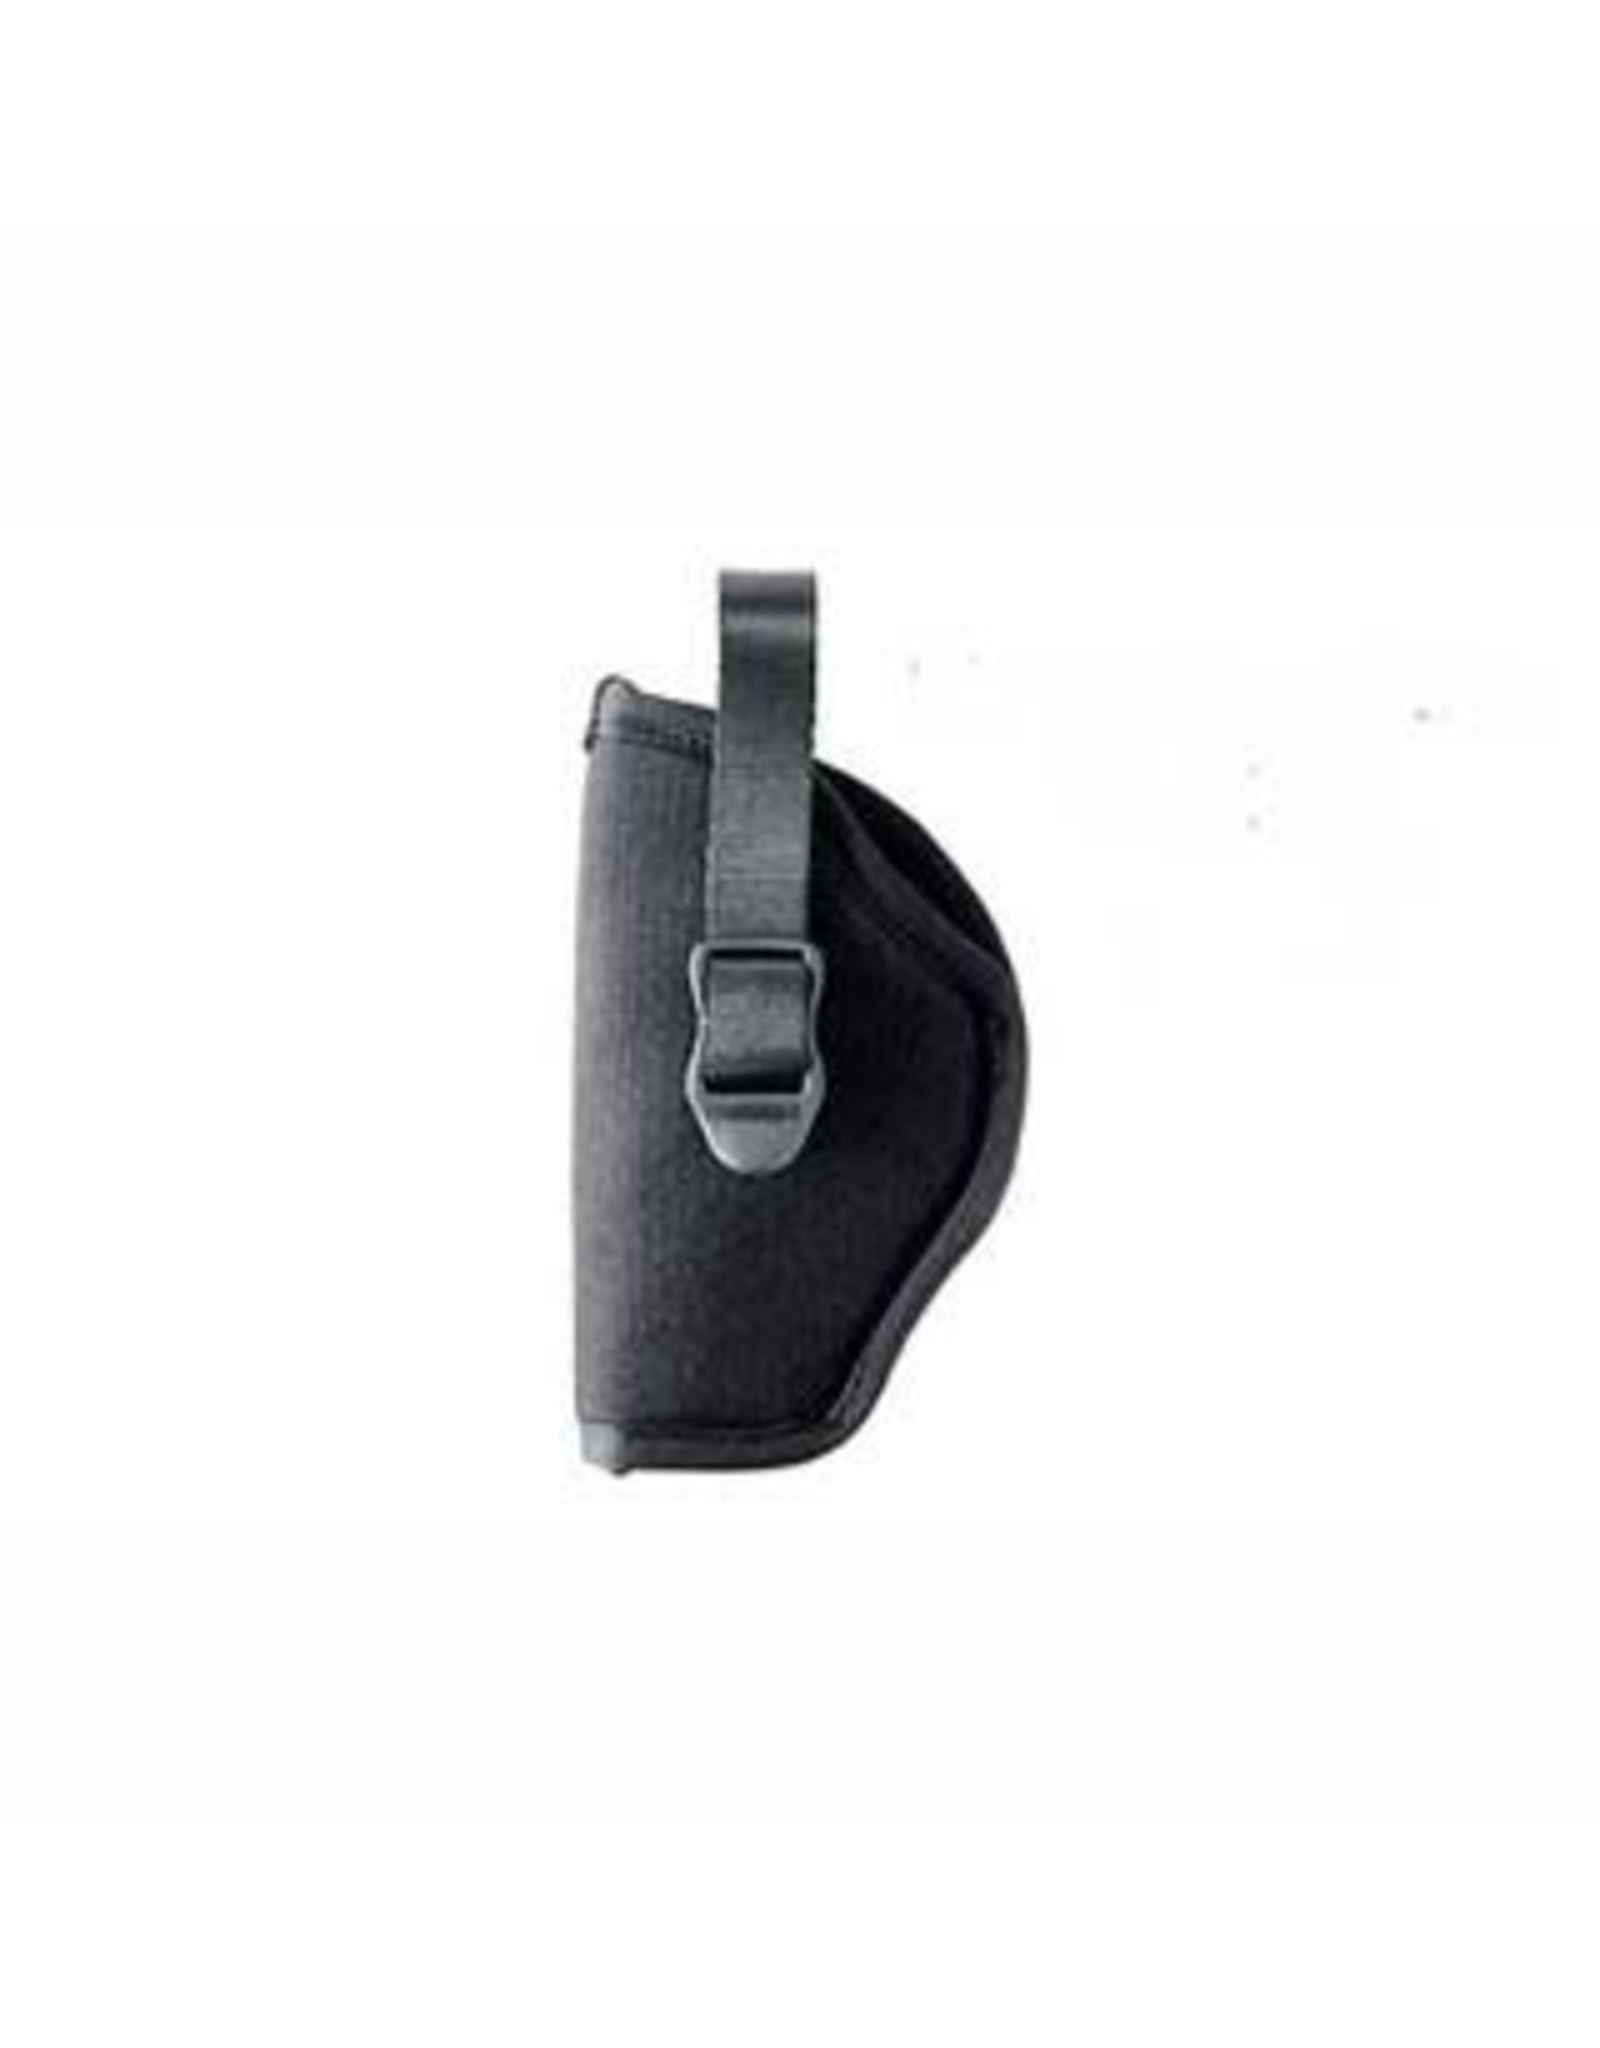 Blackhawk Blackhawk Holster for Small Autos .22-.25Cal - RH